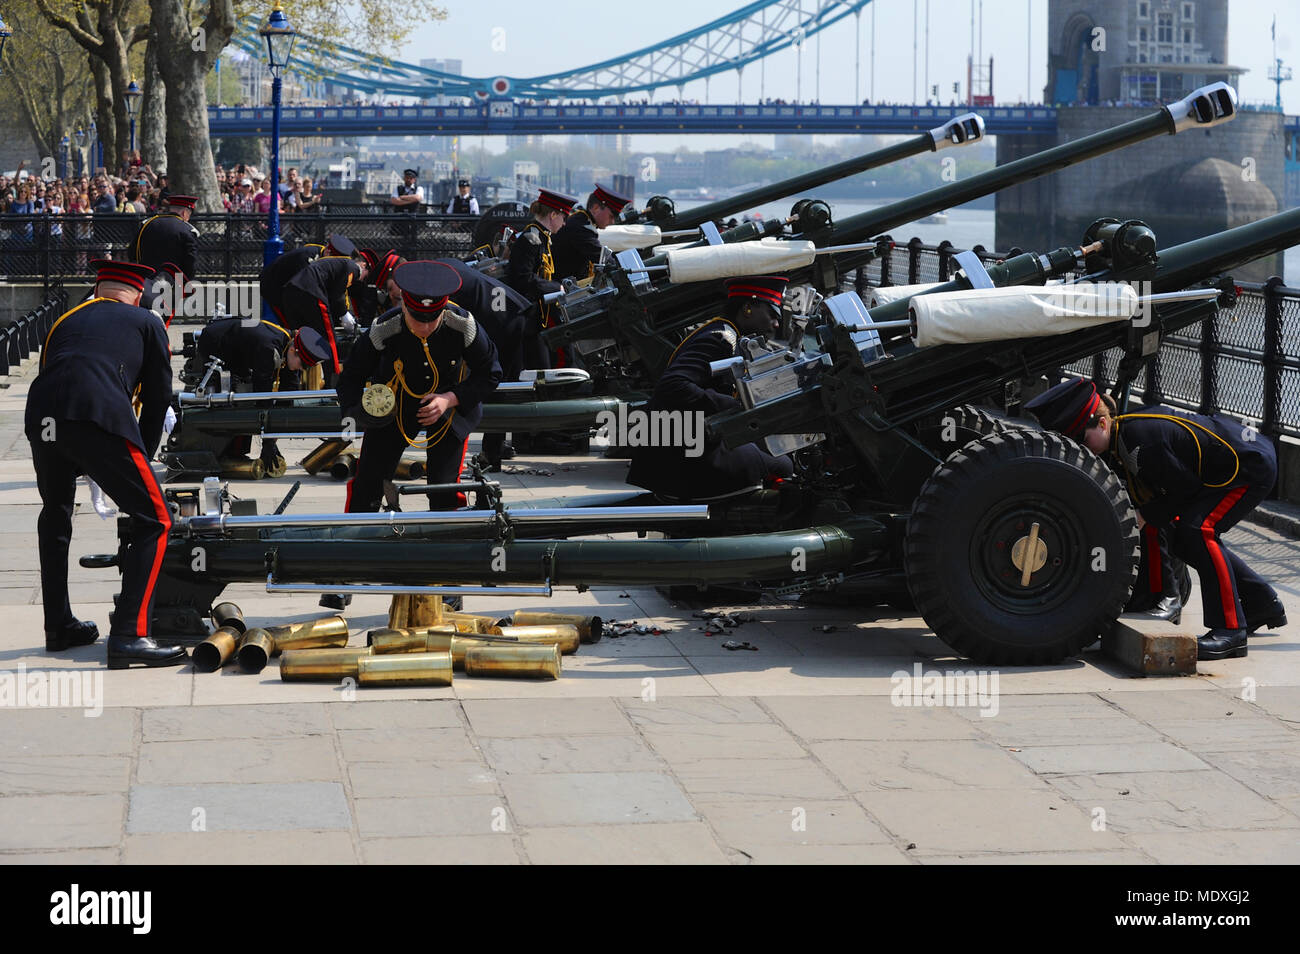 London UK 21st April 2018 Soldiers Of The Honourable Artillery Company HAC